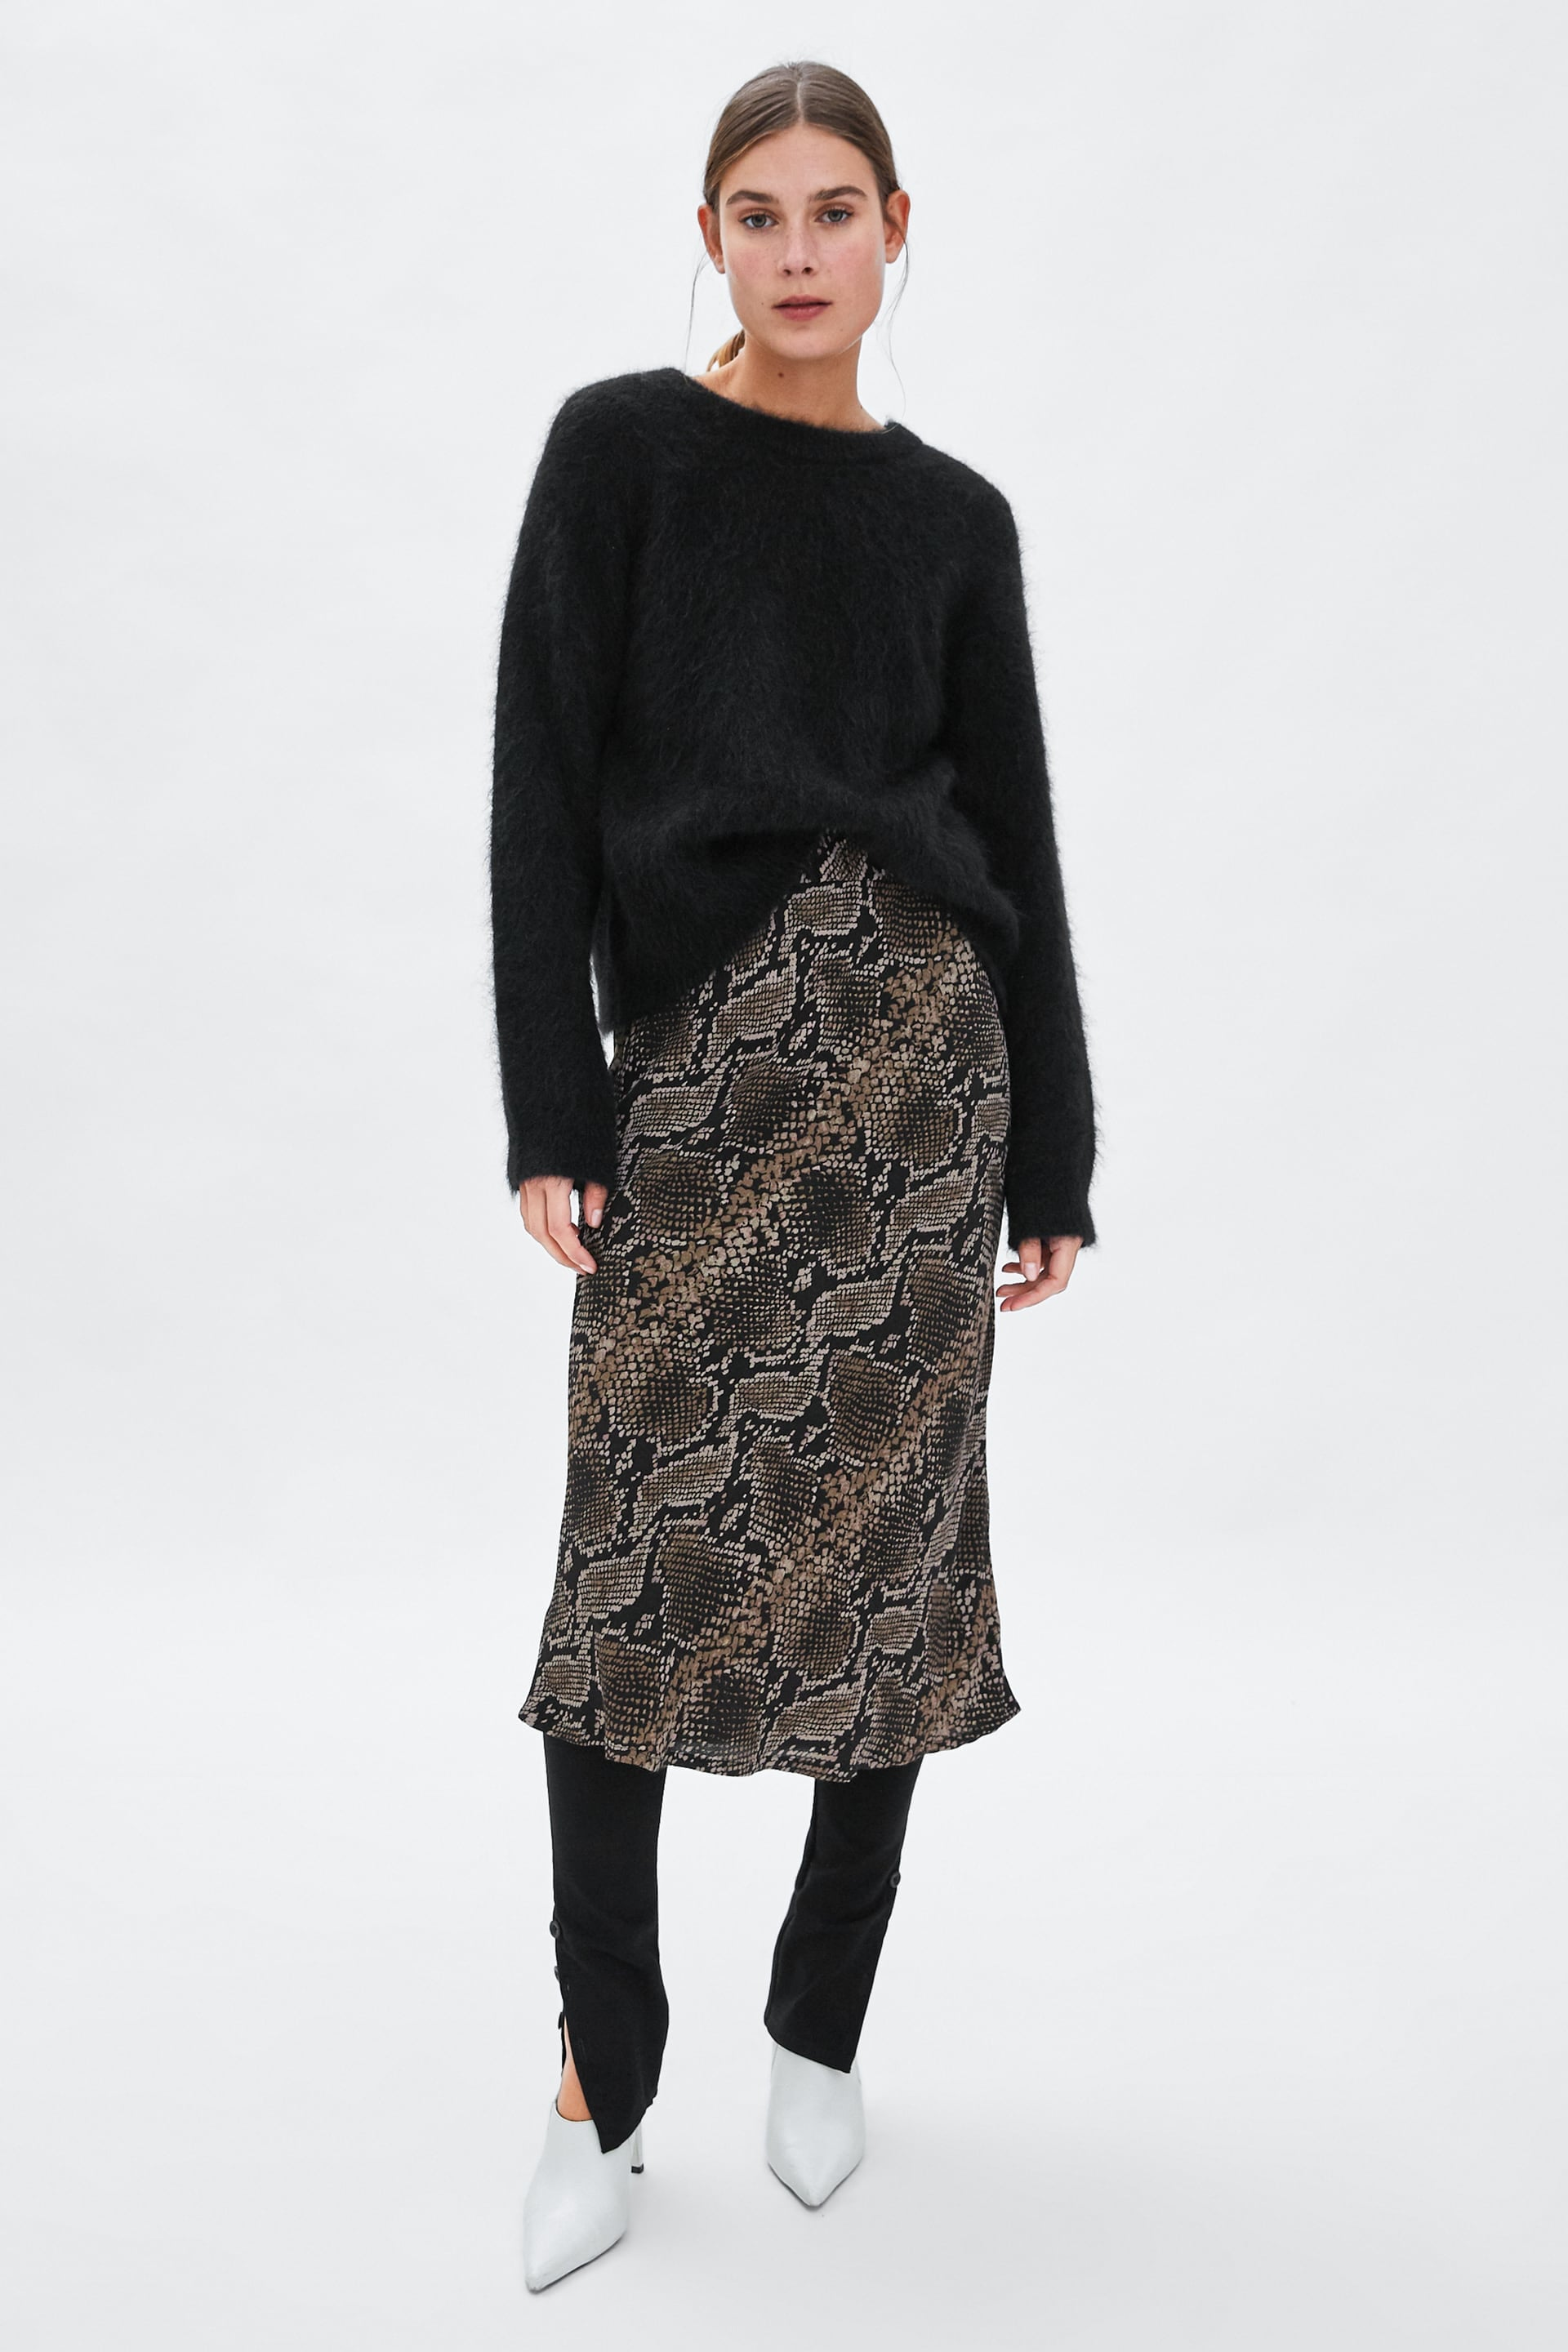 outlet store new season reputable site Zara Snakeskin Print Skirt | Queen Letizia's Zara Skirt Only ...